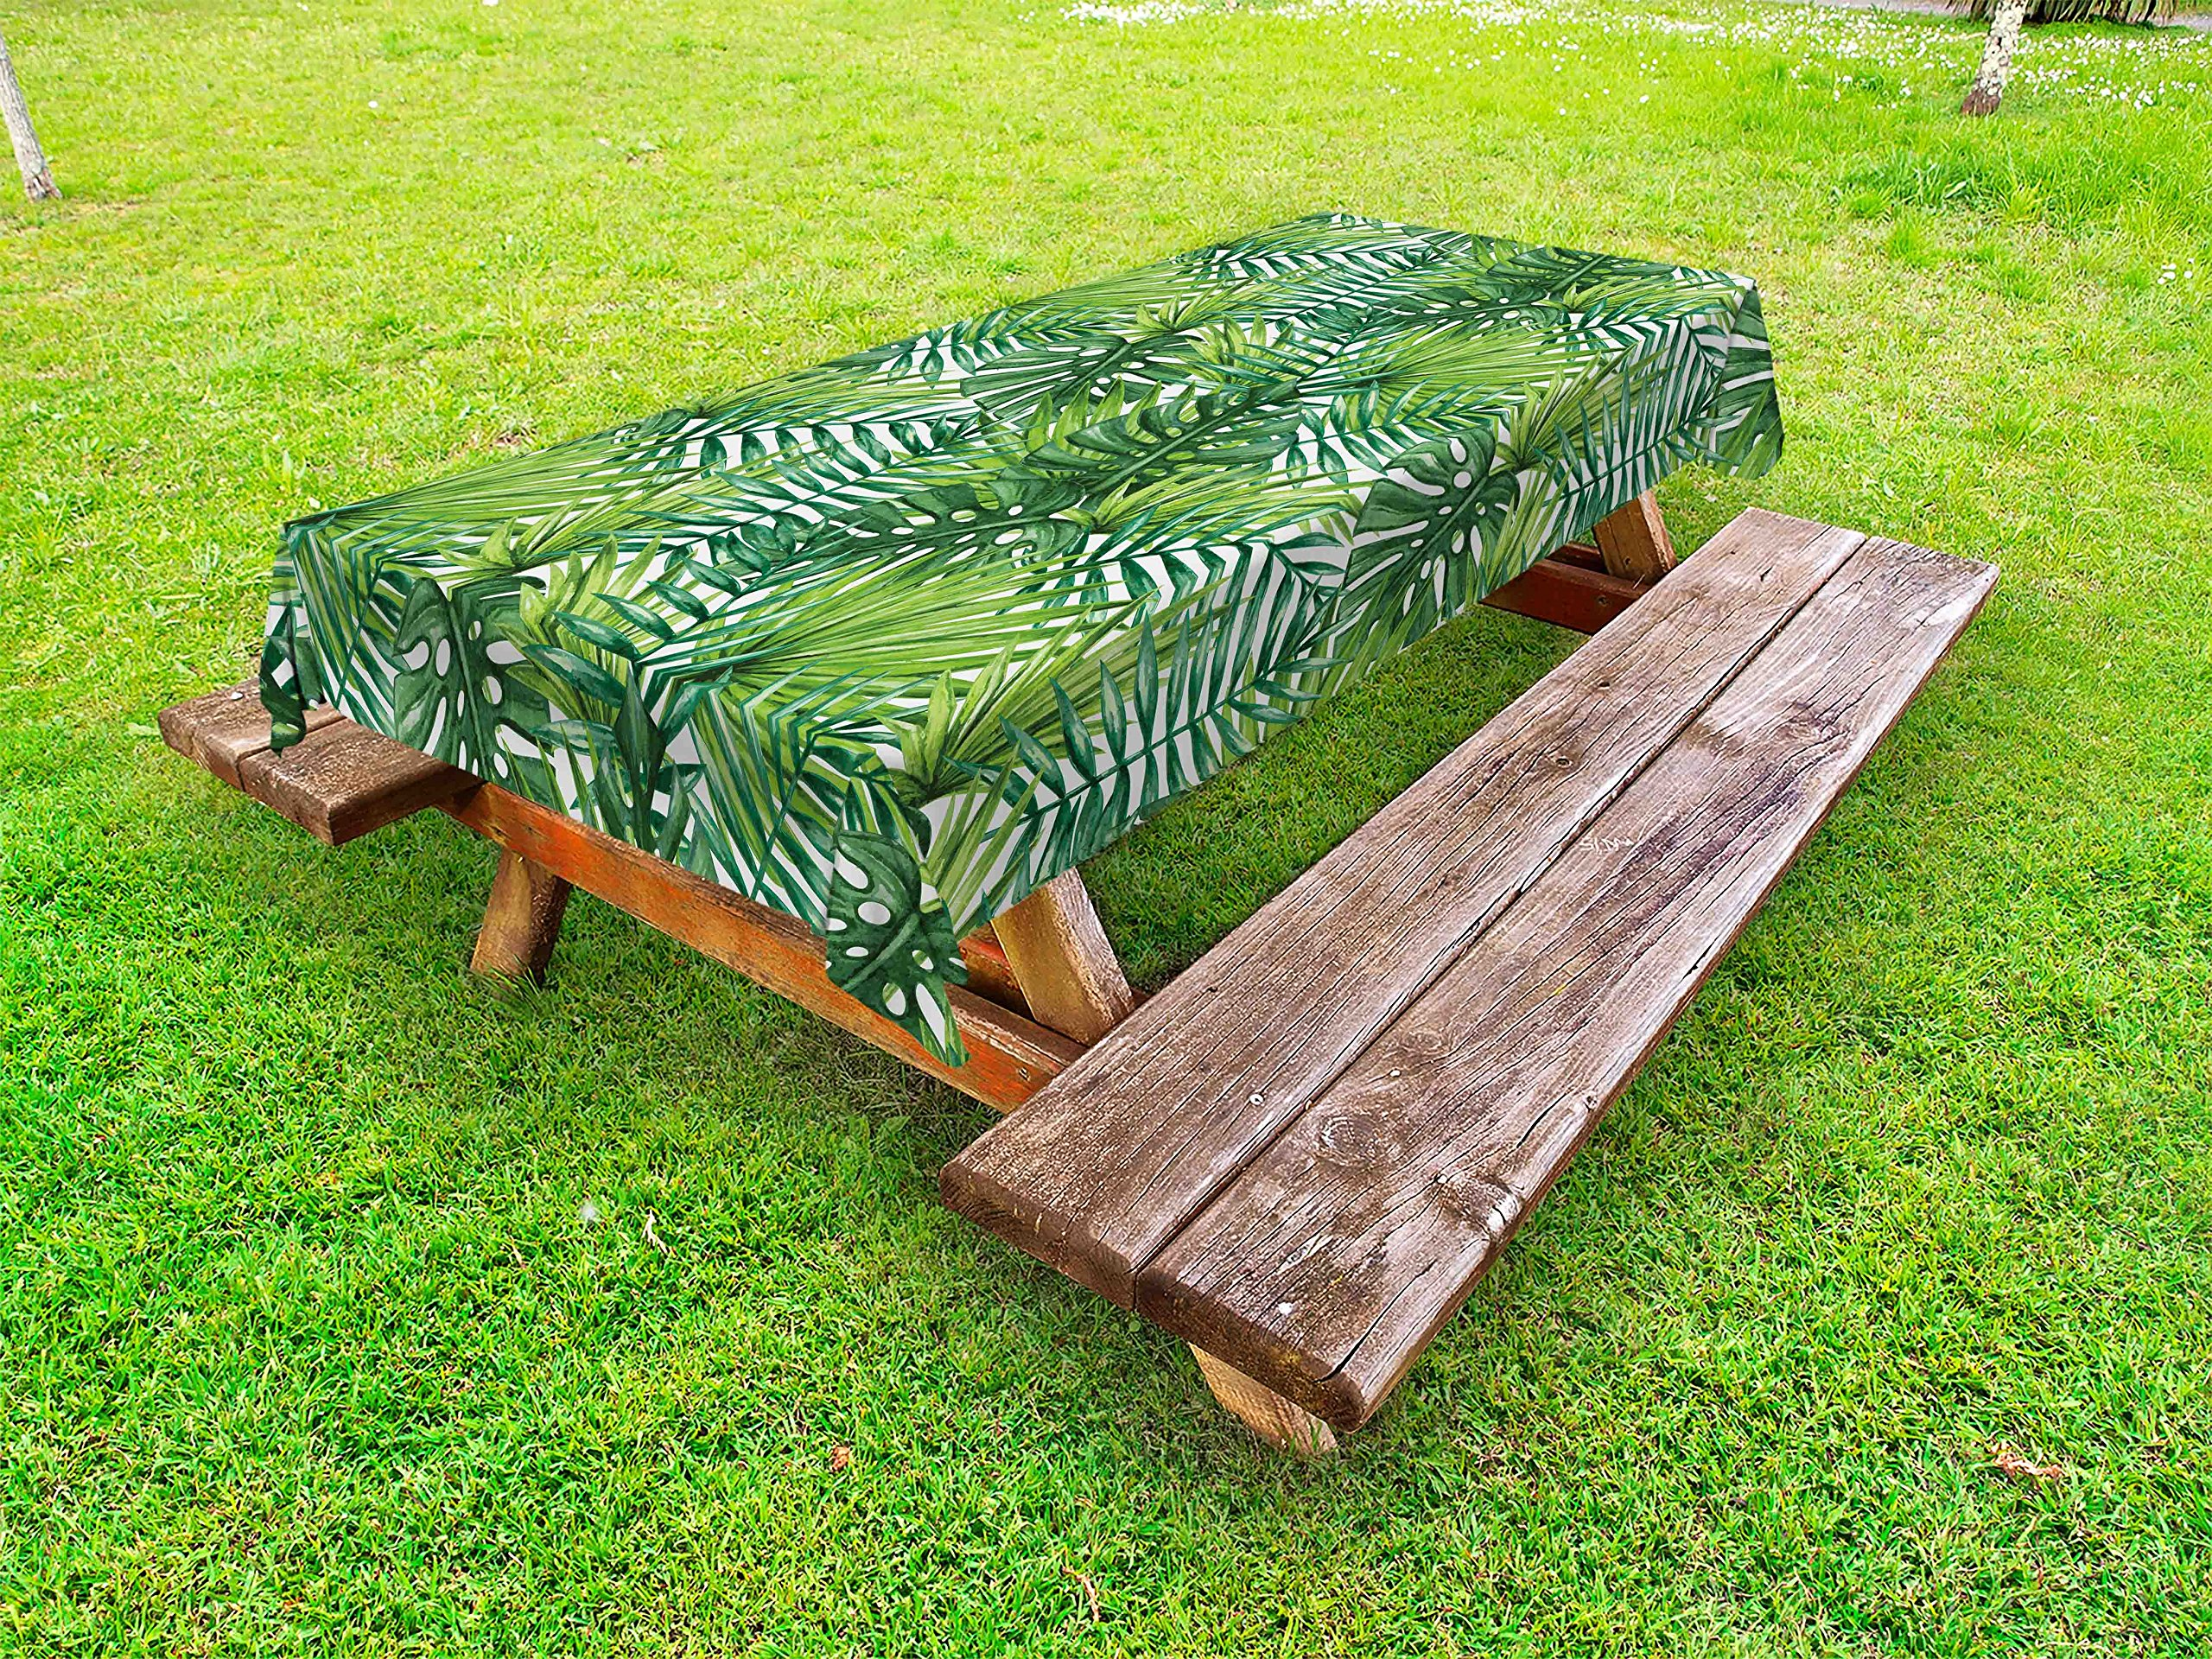 Ambesonne Leaf Outdoor Tablecloth, Tropical Exotic Banana Forest Palm Tree Leaves Watercolor Design Image, Decorative Washable Picnic Table Cloth, 58 X 84 inches, Pale Green and Dark Green